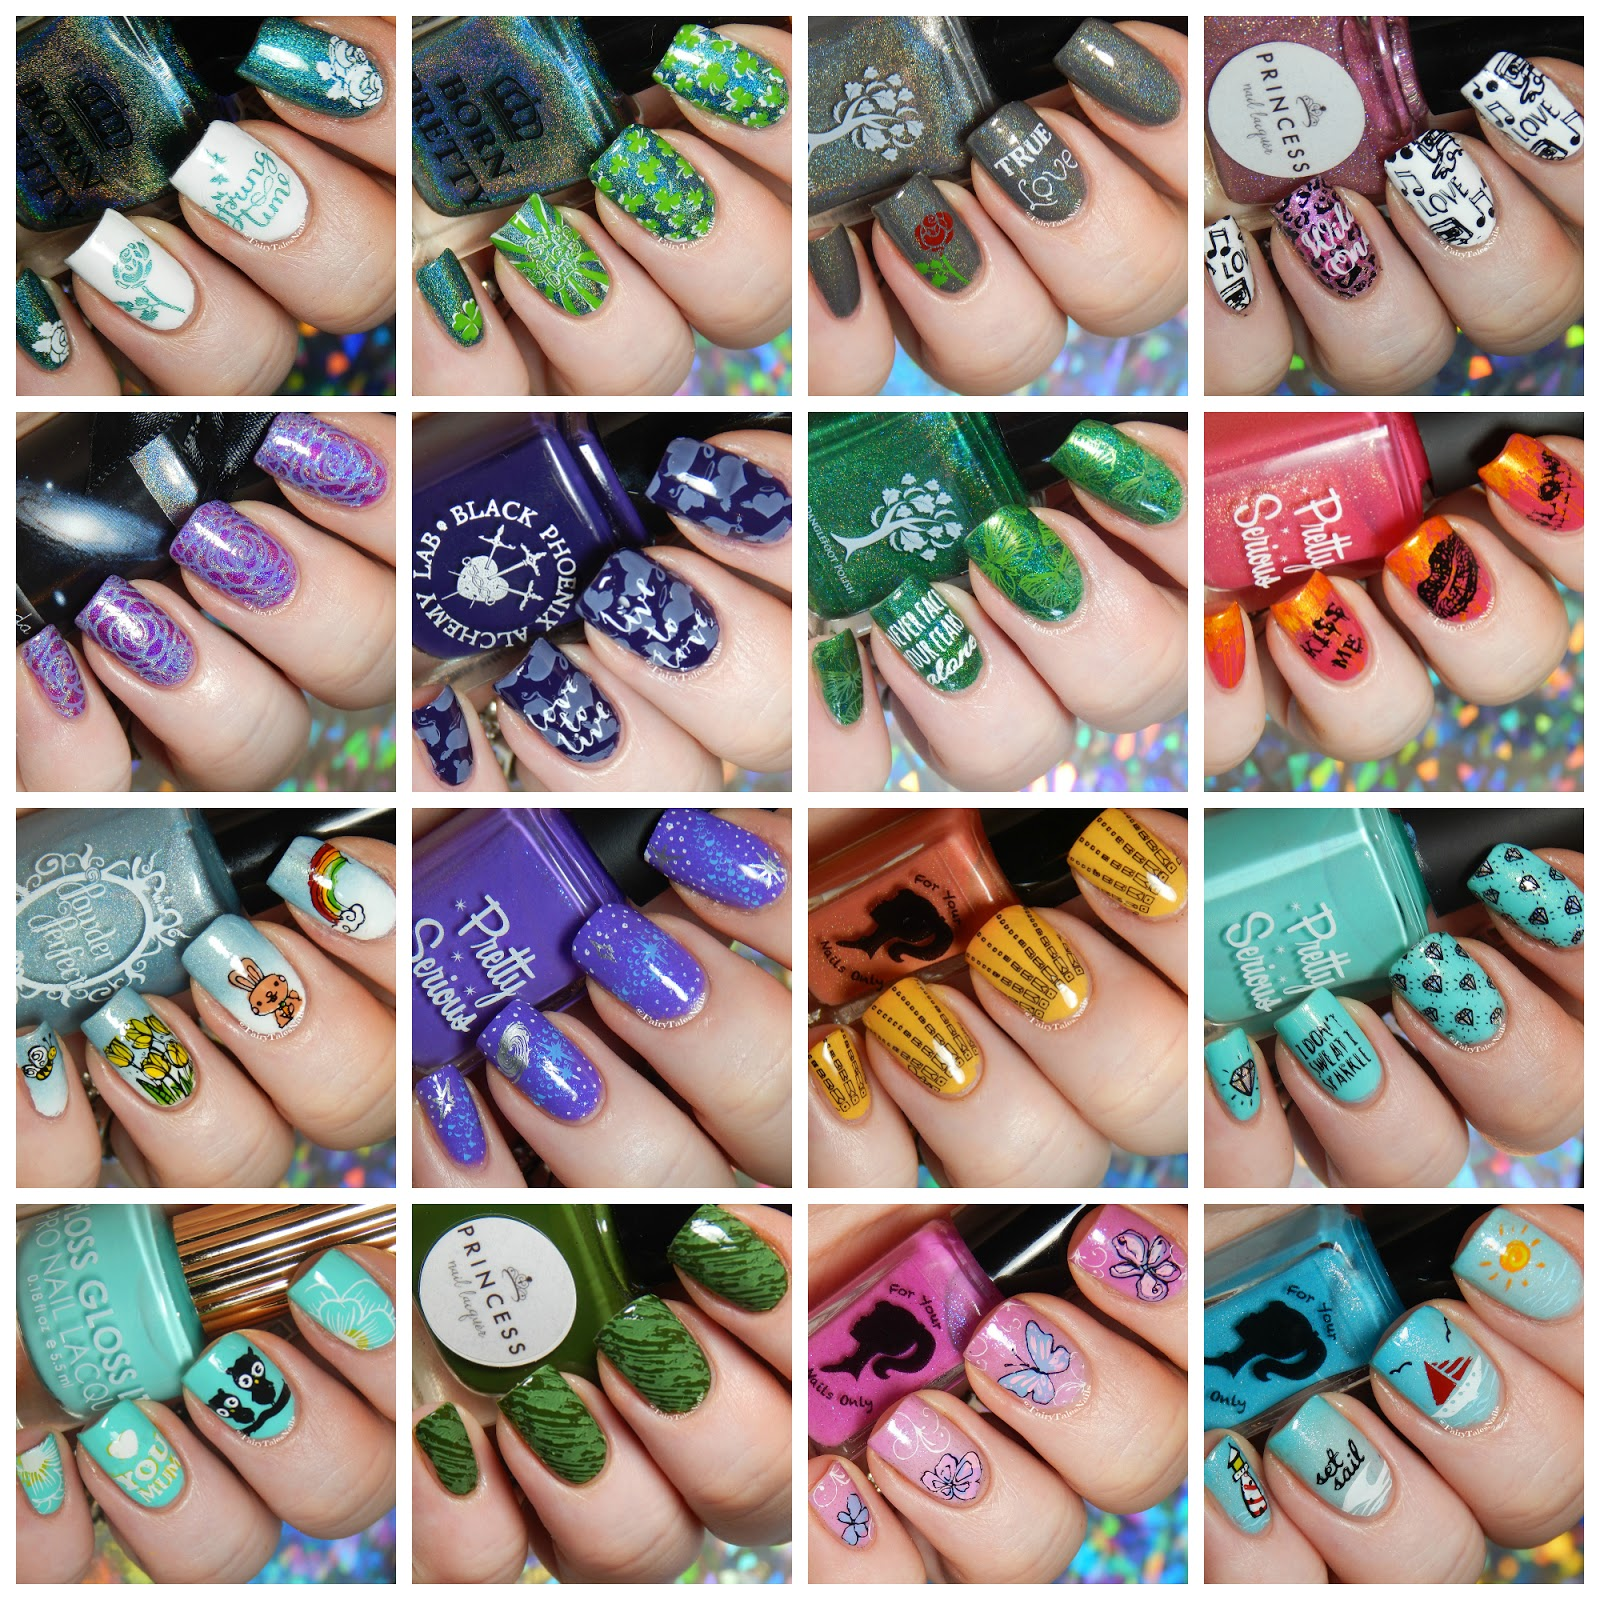 FairyTales Nails: March Nail Art 2017 Round Up